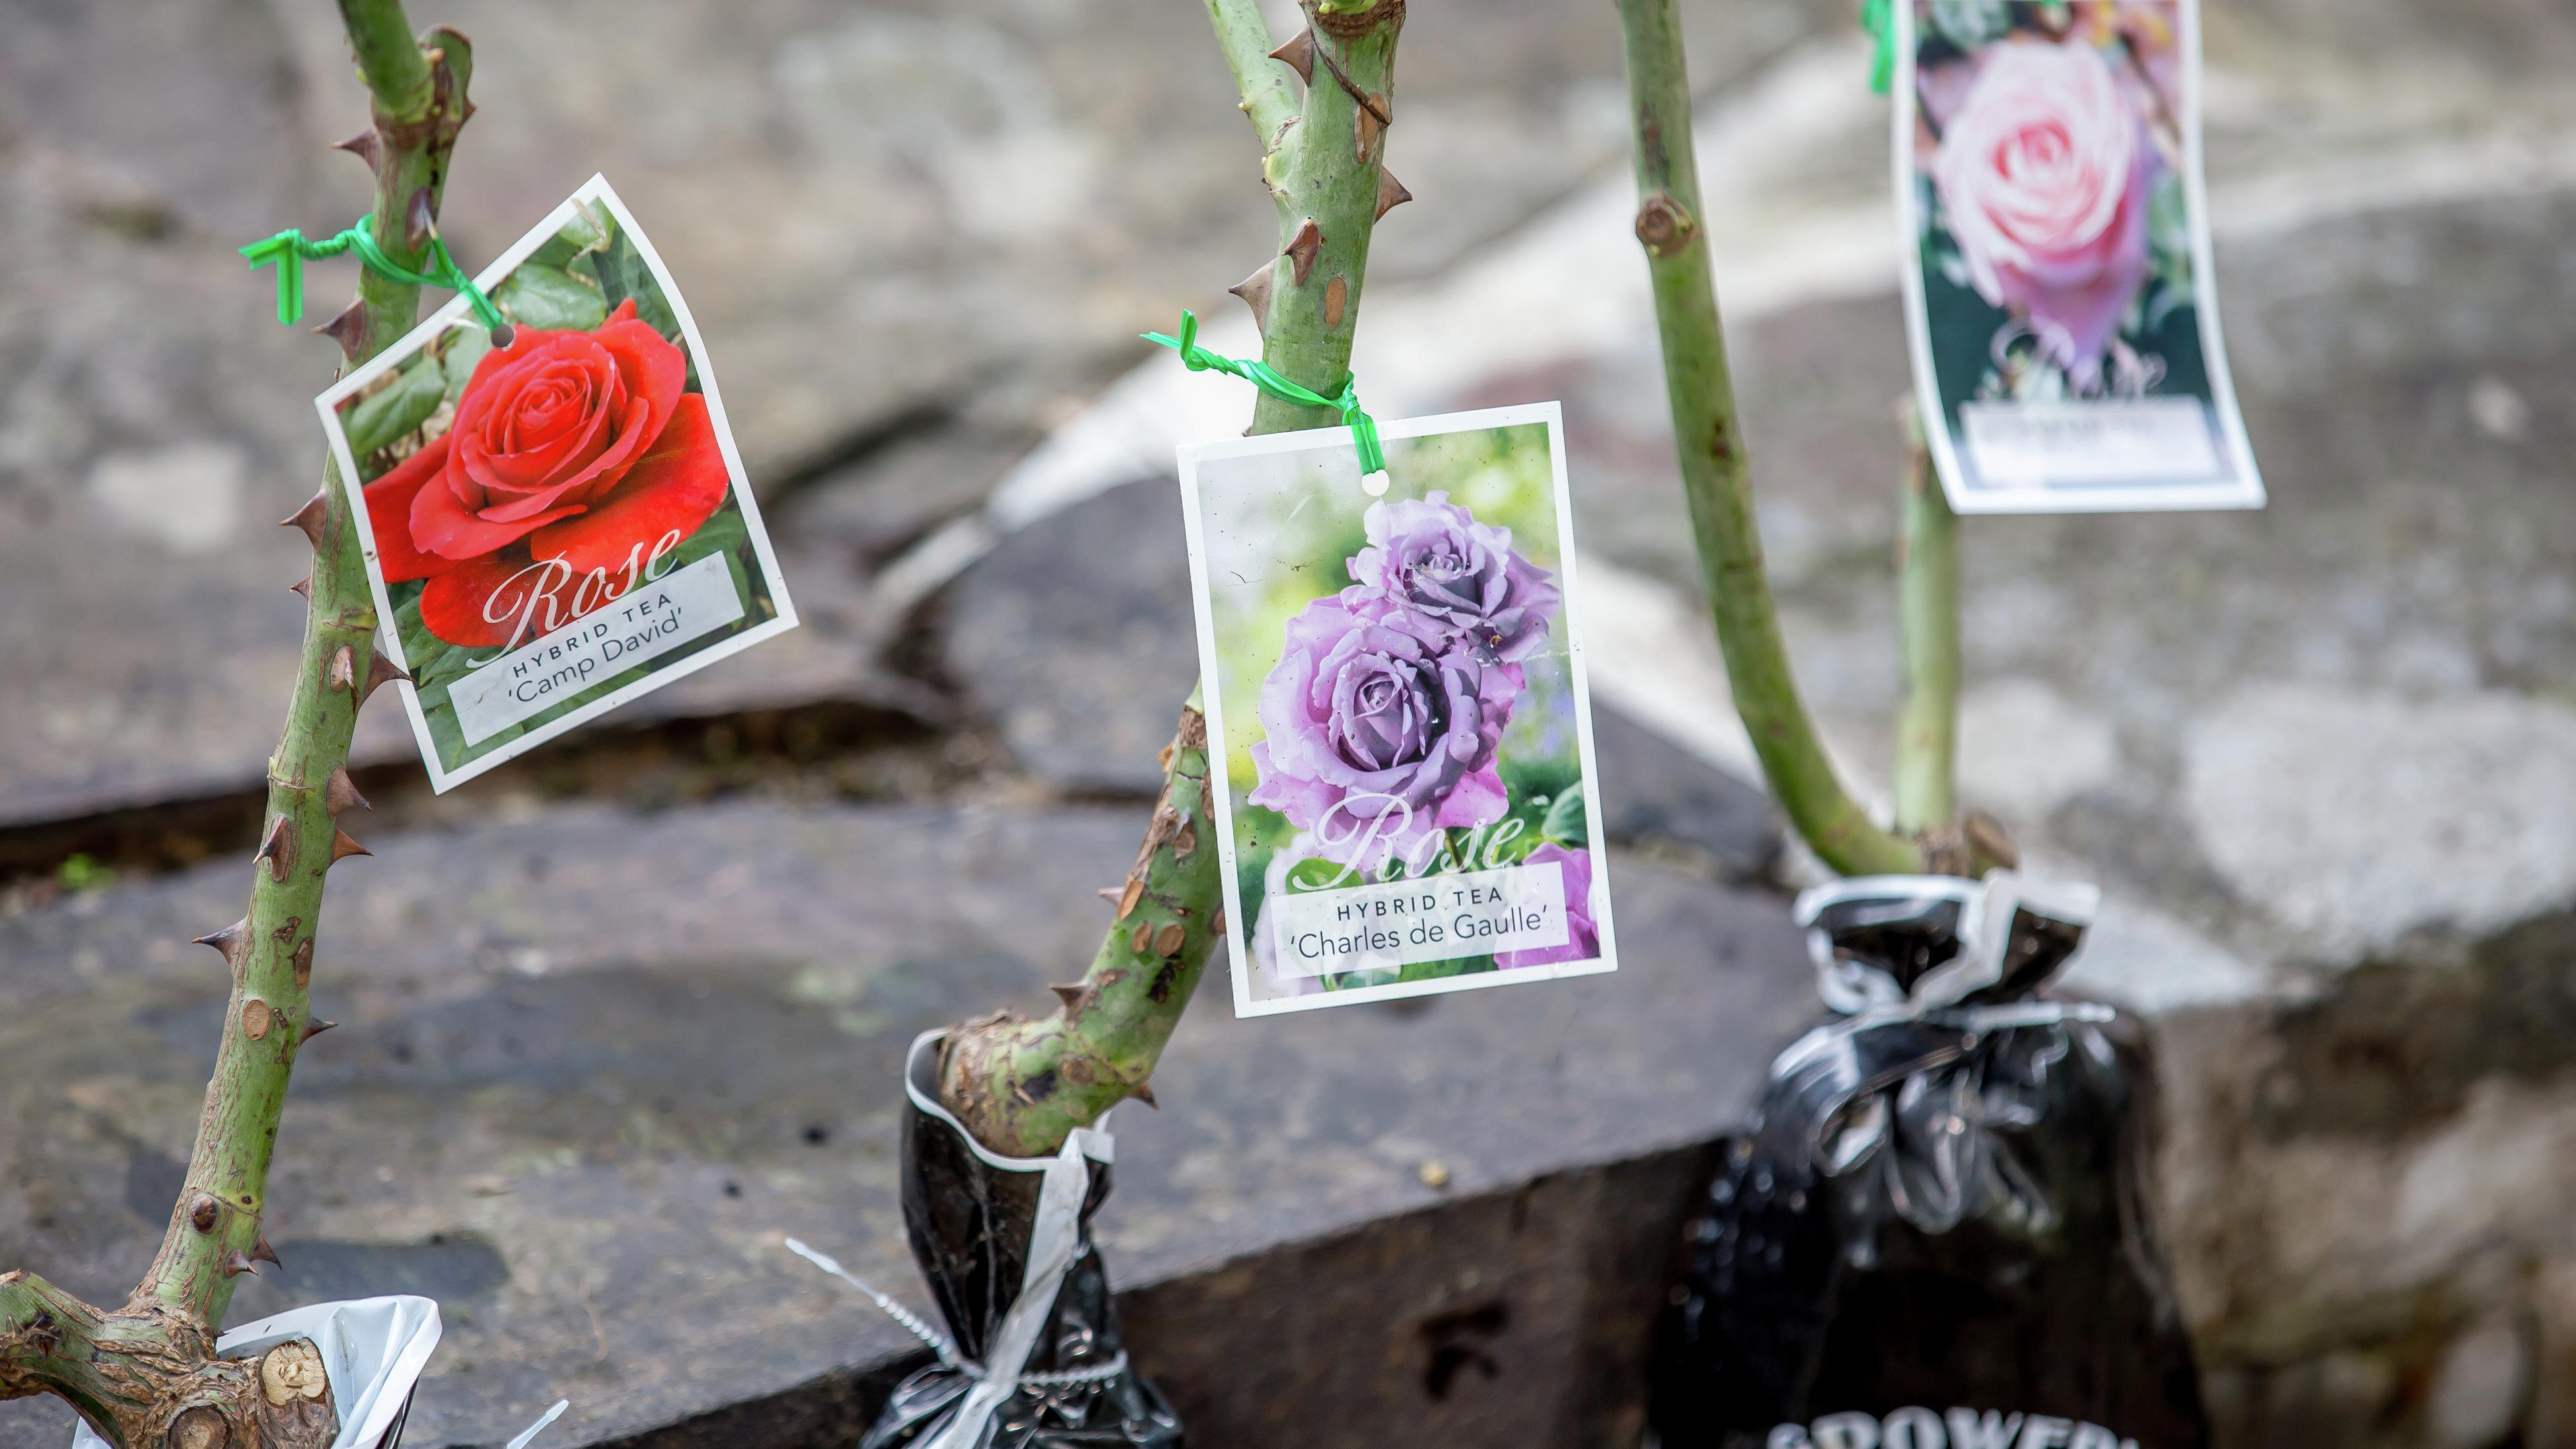 Three bagged rose plants with identification tags on them